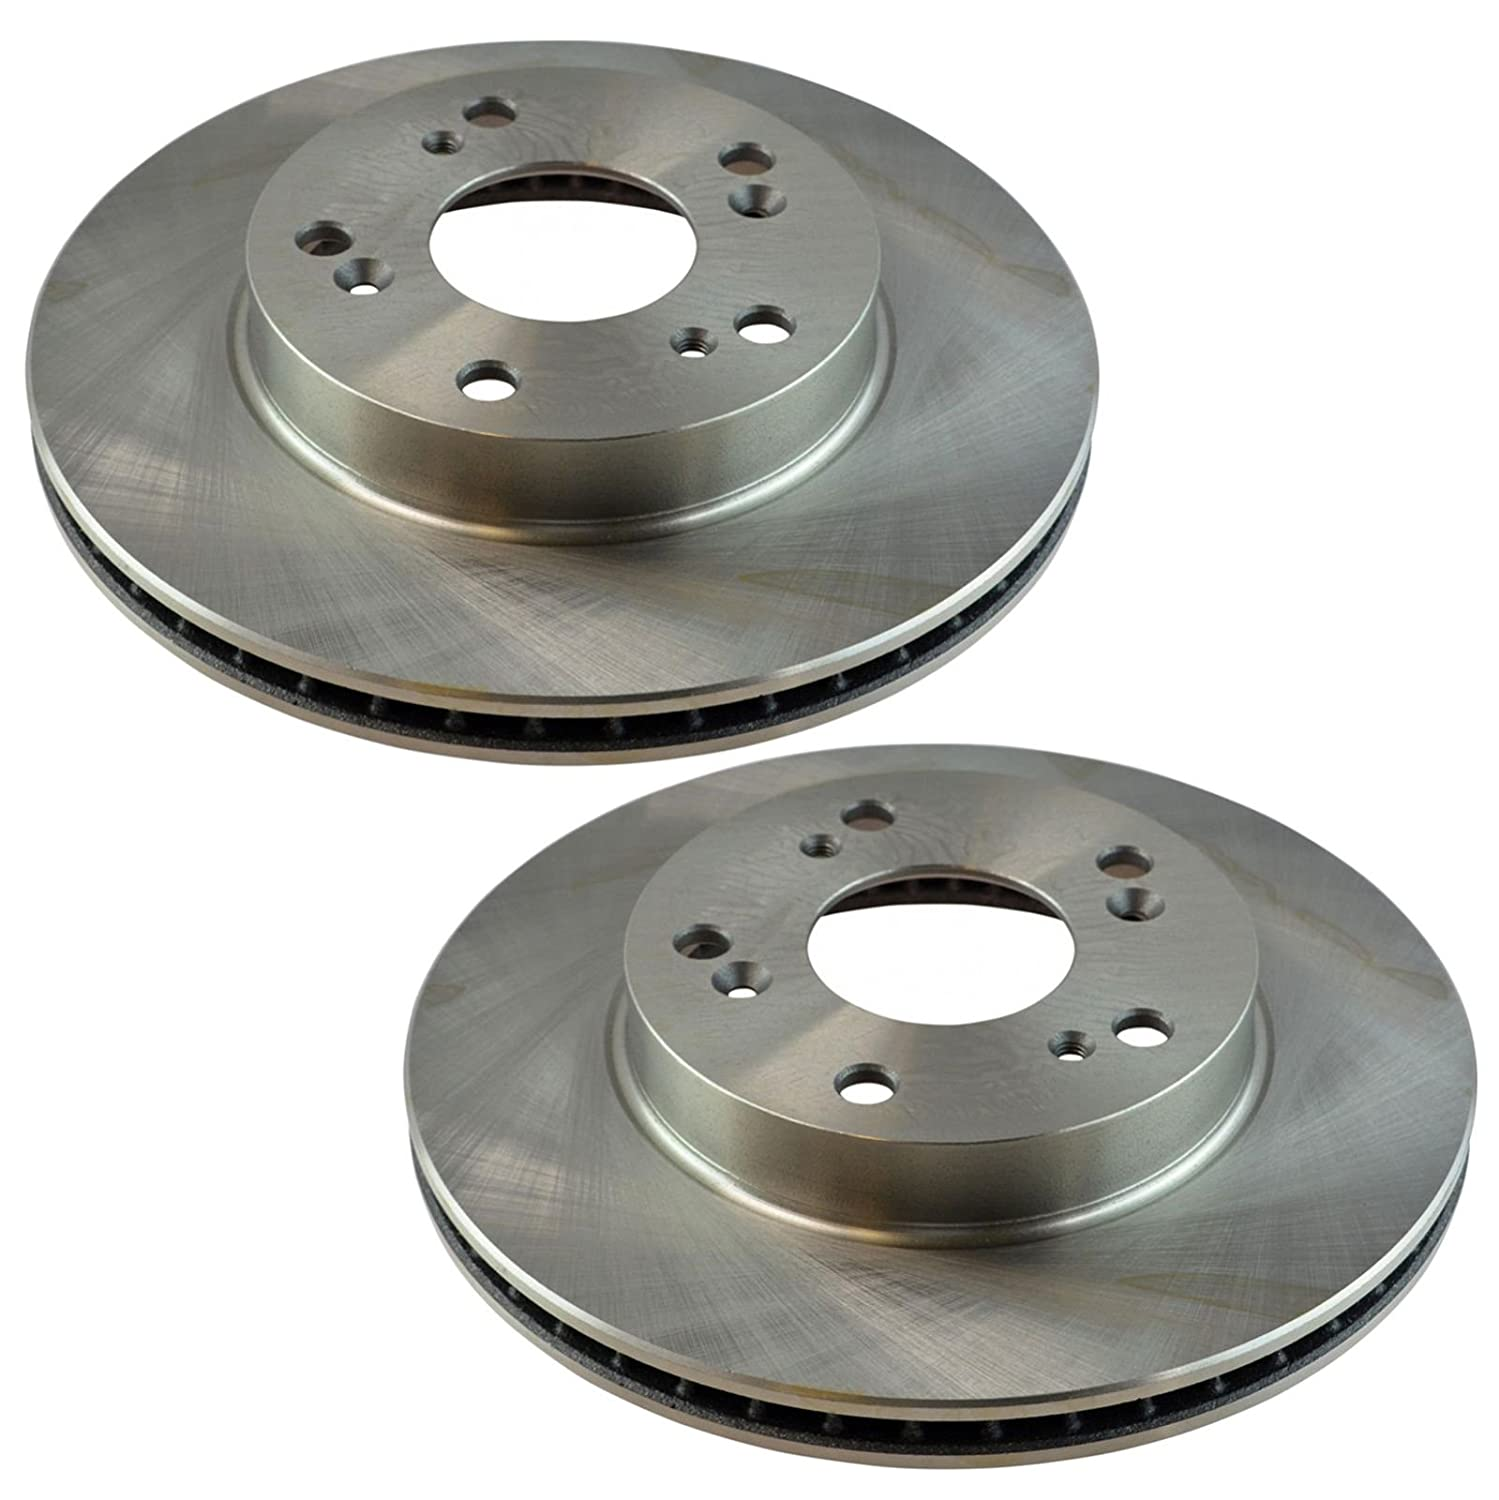 Disc Brake Rotor Driver /& Passenger Side Front Pair for Honda Civic Acura ILX